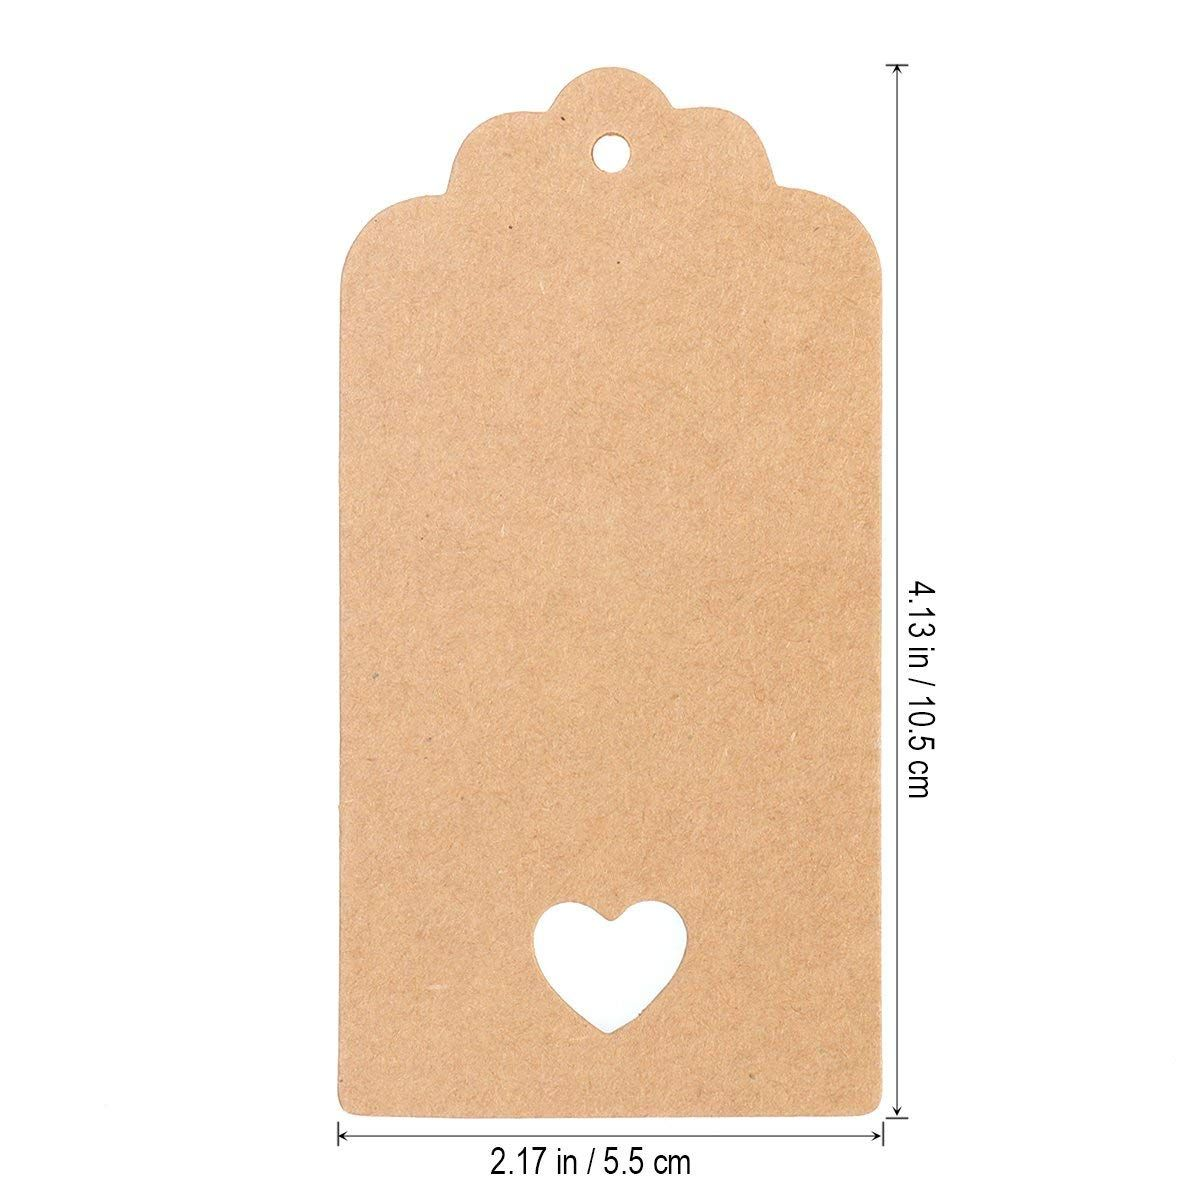 3d3d7805a316 Vosarea 100PCS Rustic Kraft Paper Hanging Tags Cards Hollow Heart ...